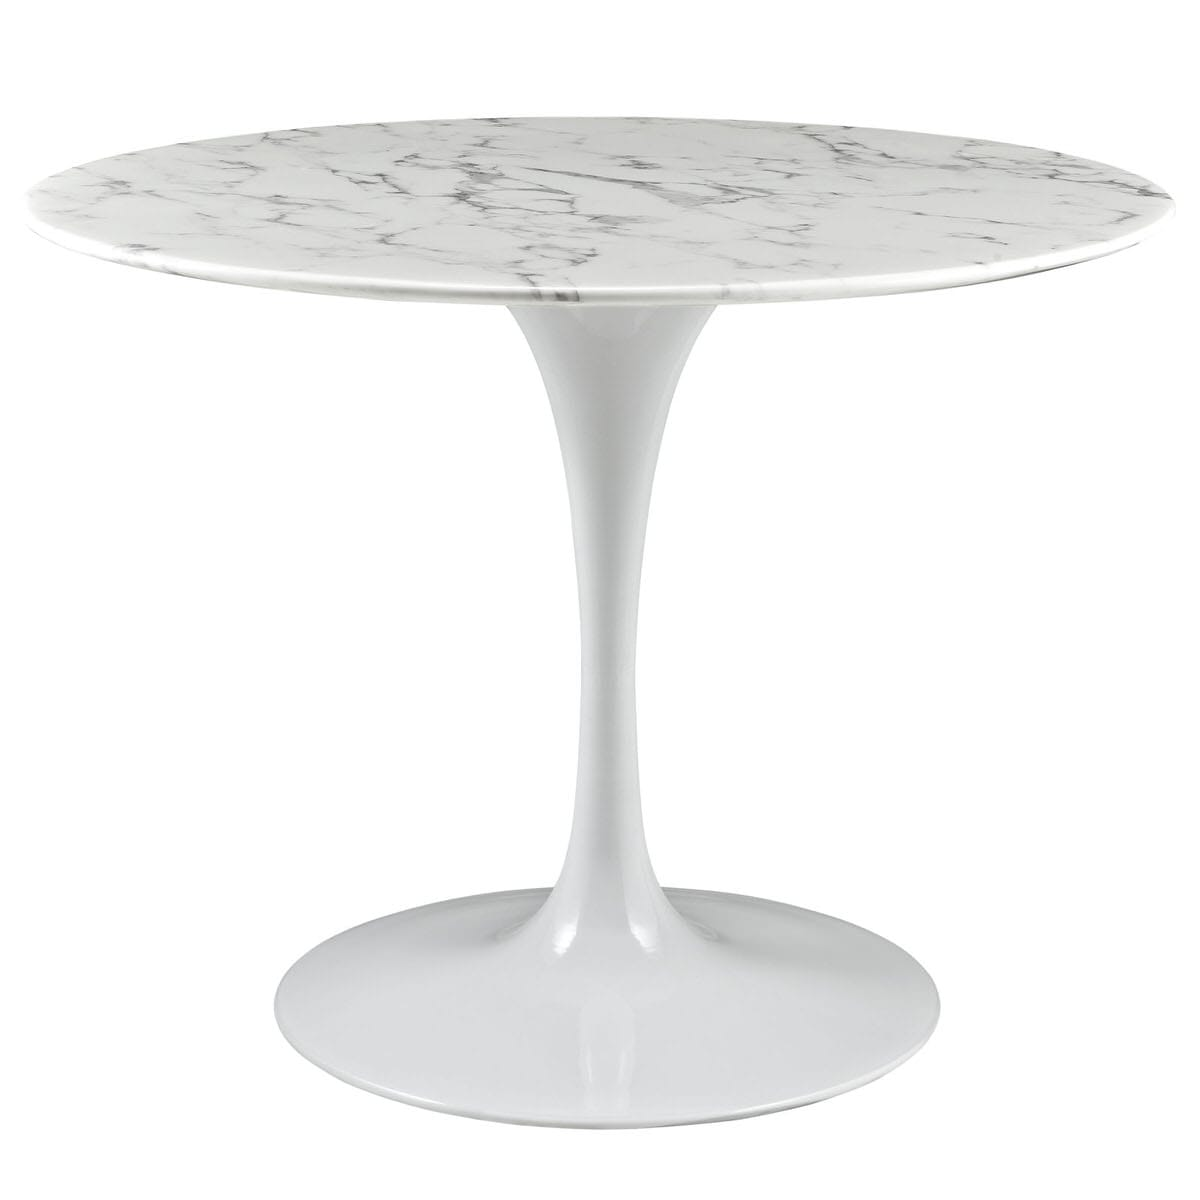 40 inch round dining table 60 inch lippa 40 inch round artificial marble dining table white by modern living modern living